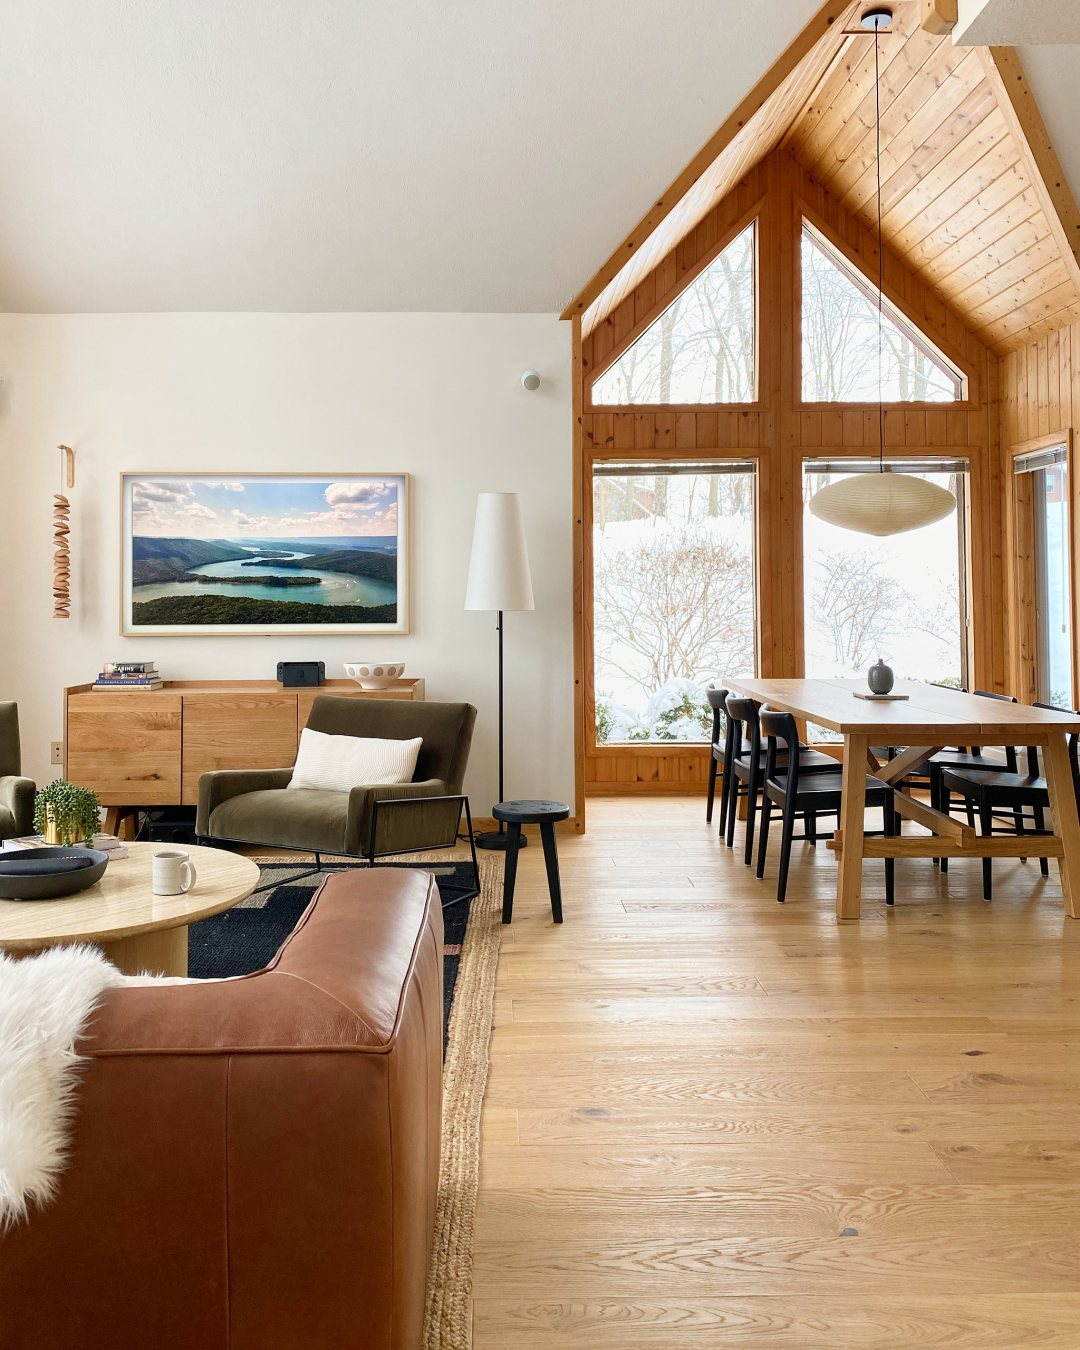 Cabin Interior with wood floors and a view of the snow